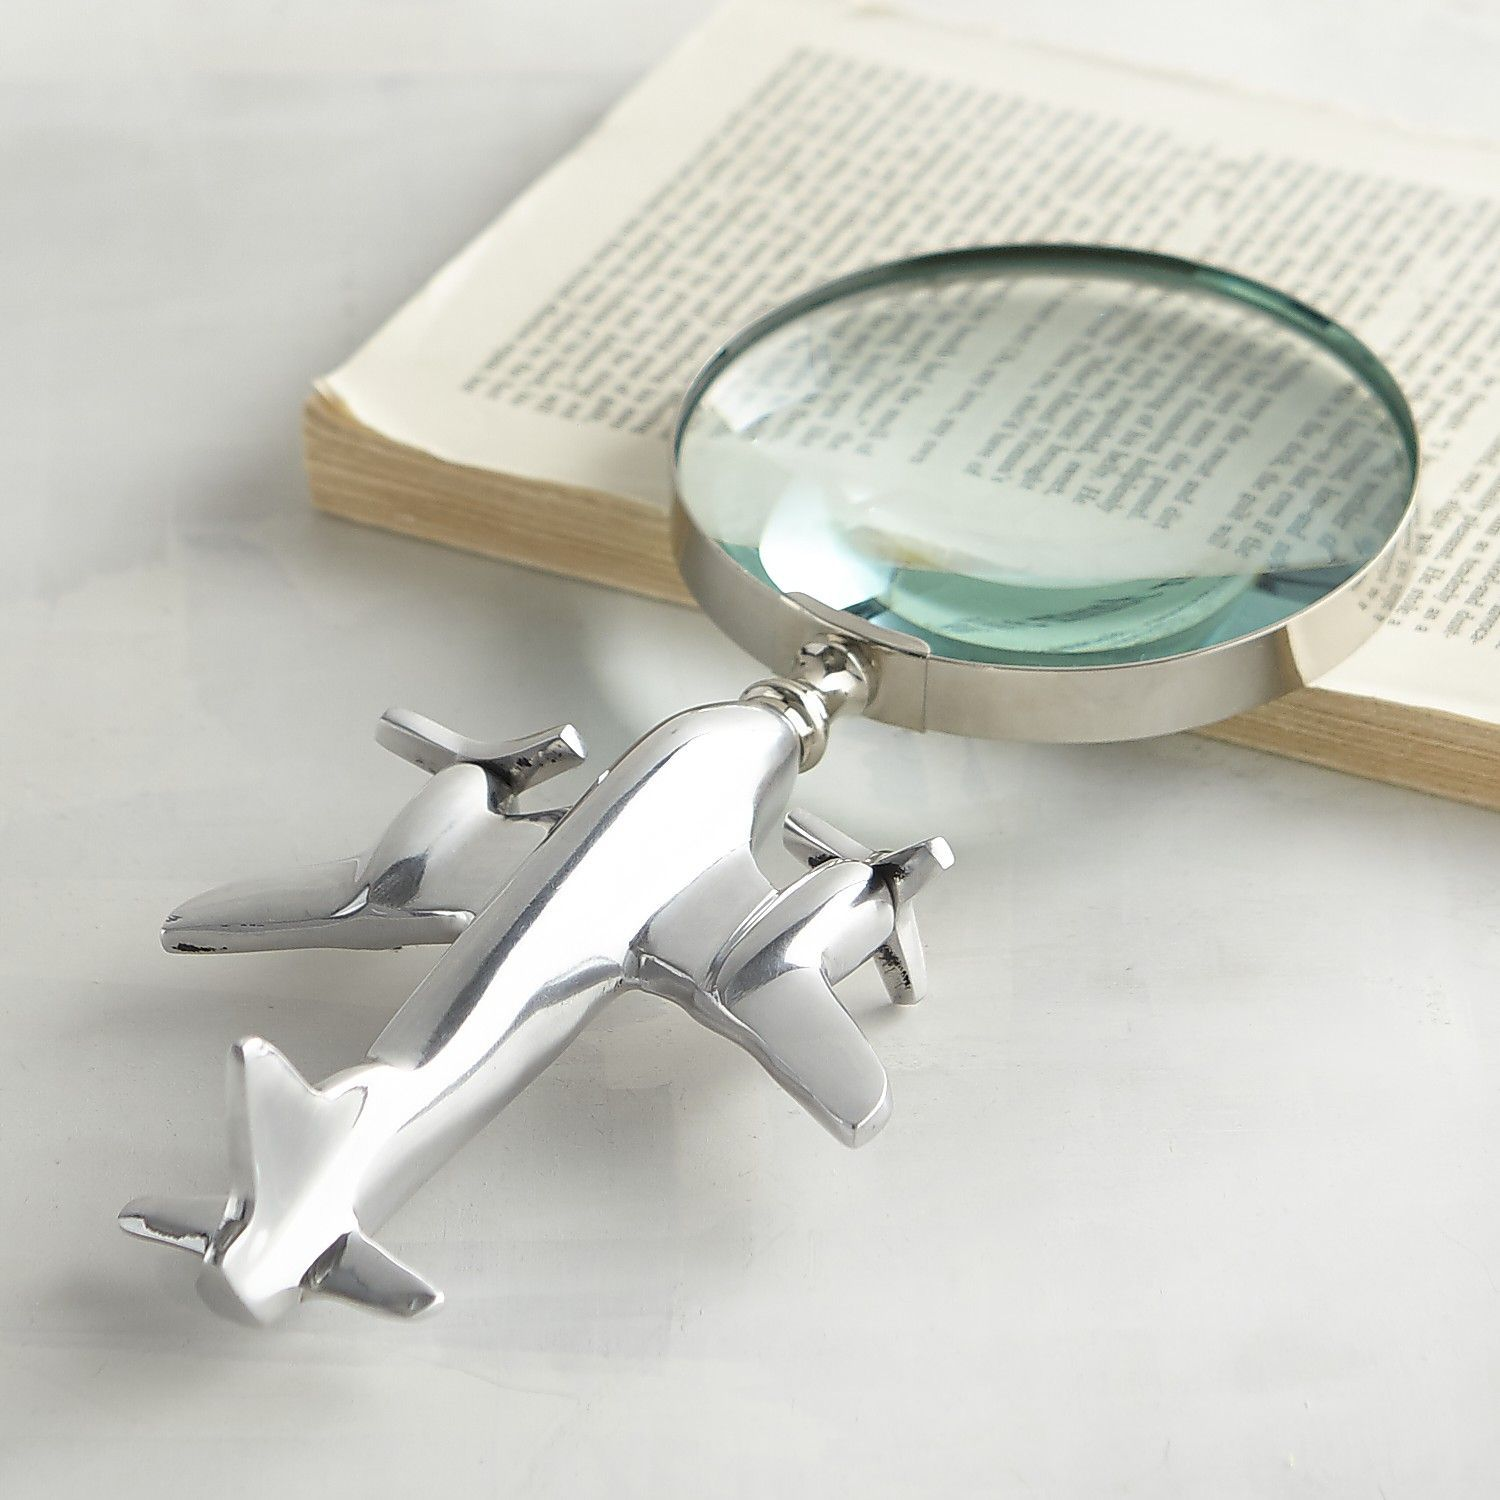 airplane magnifying glass